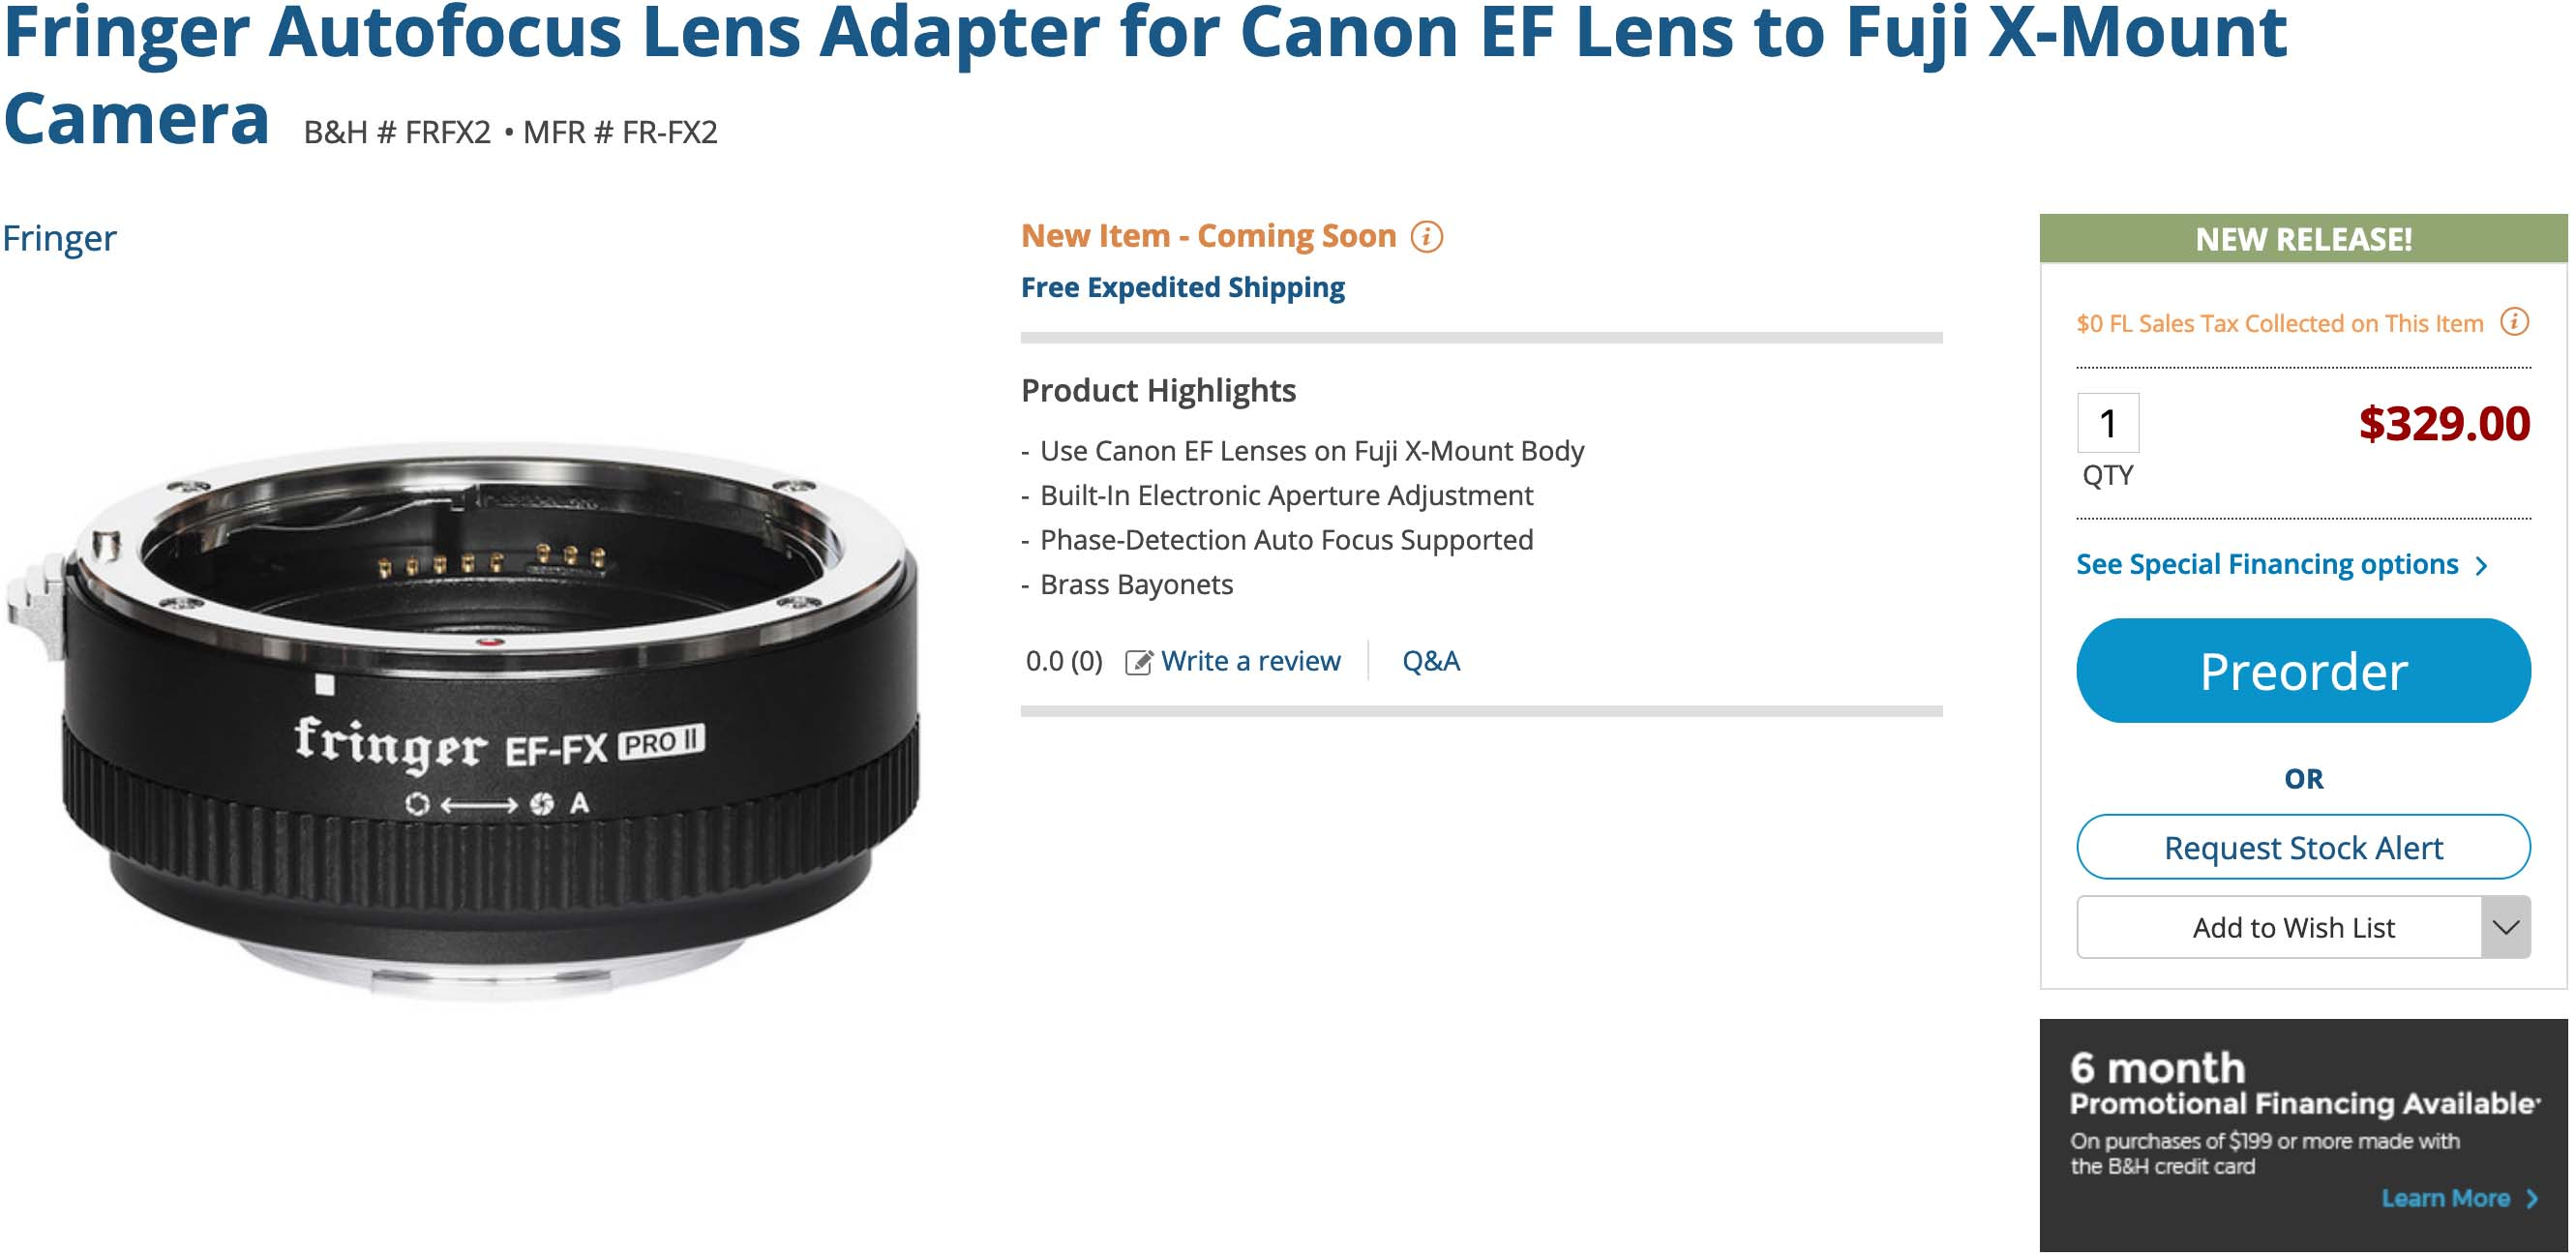 Fringer EF-FX Pro II Now Available in Stores - Fuji Addict